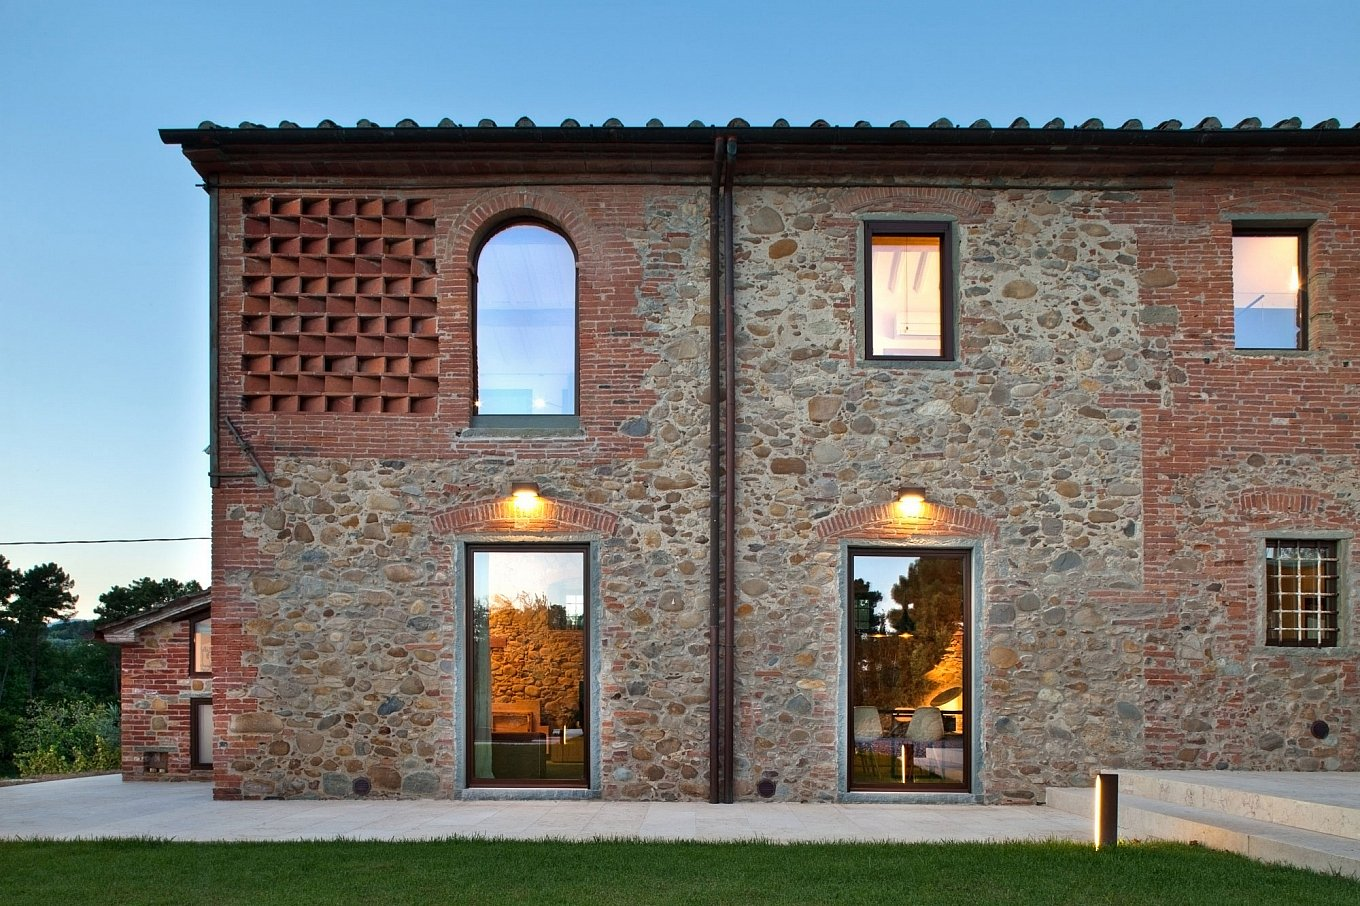 renovated-19th-century-country-house-in-tuscany-2